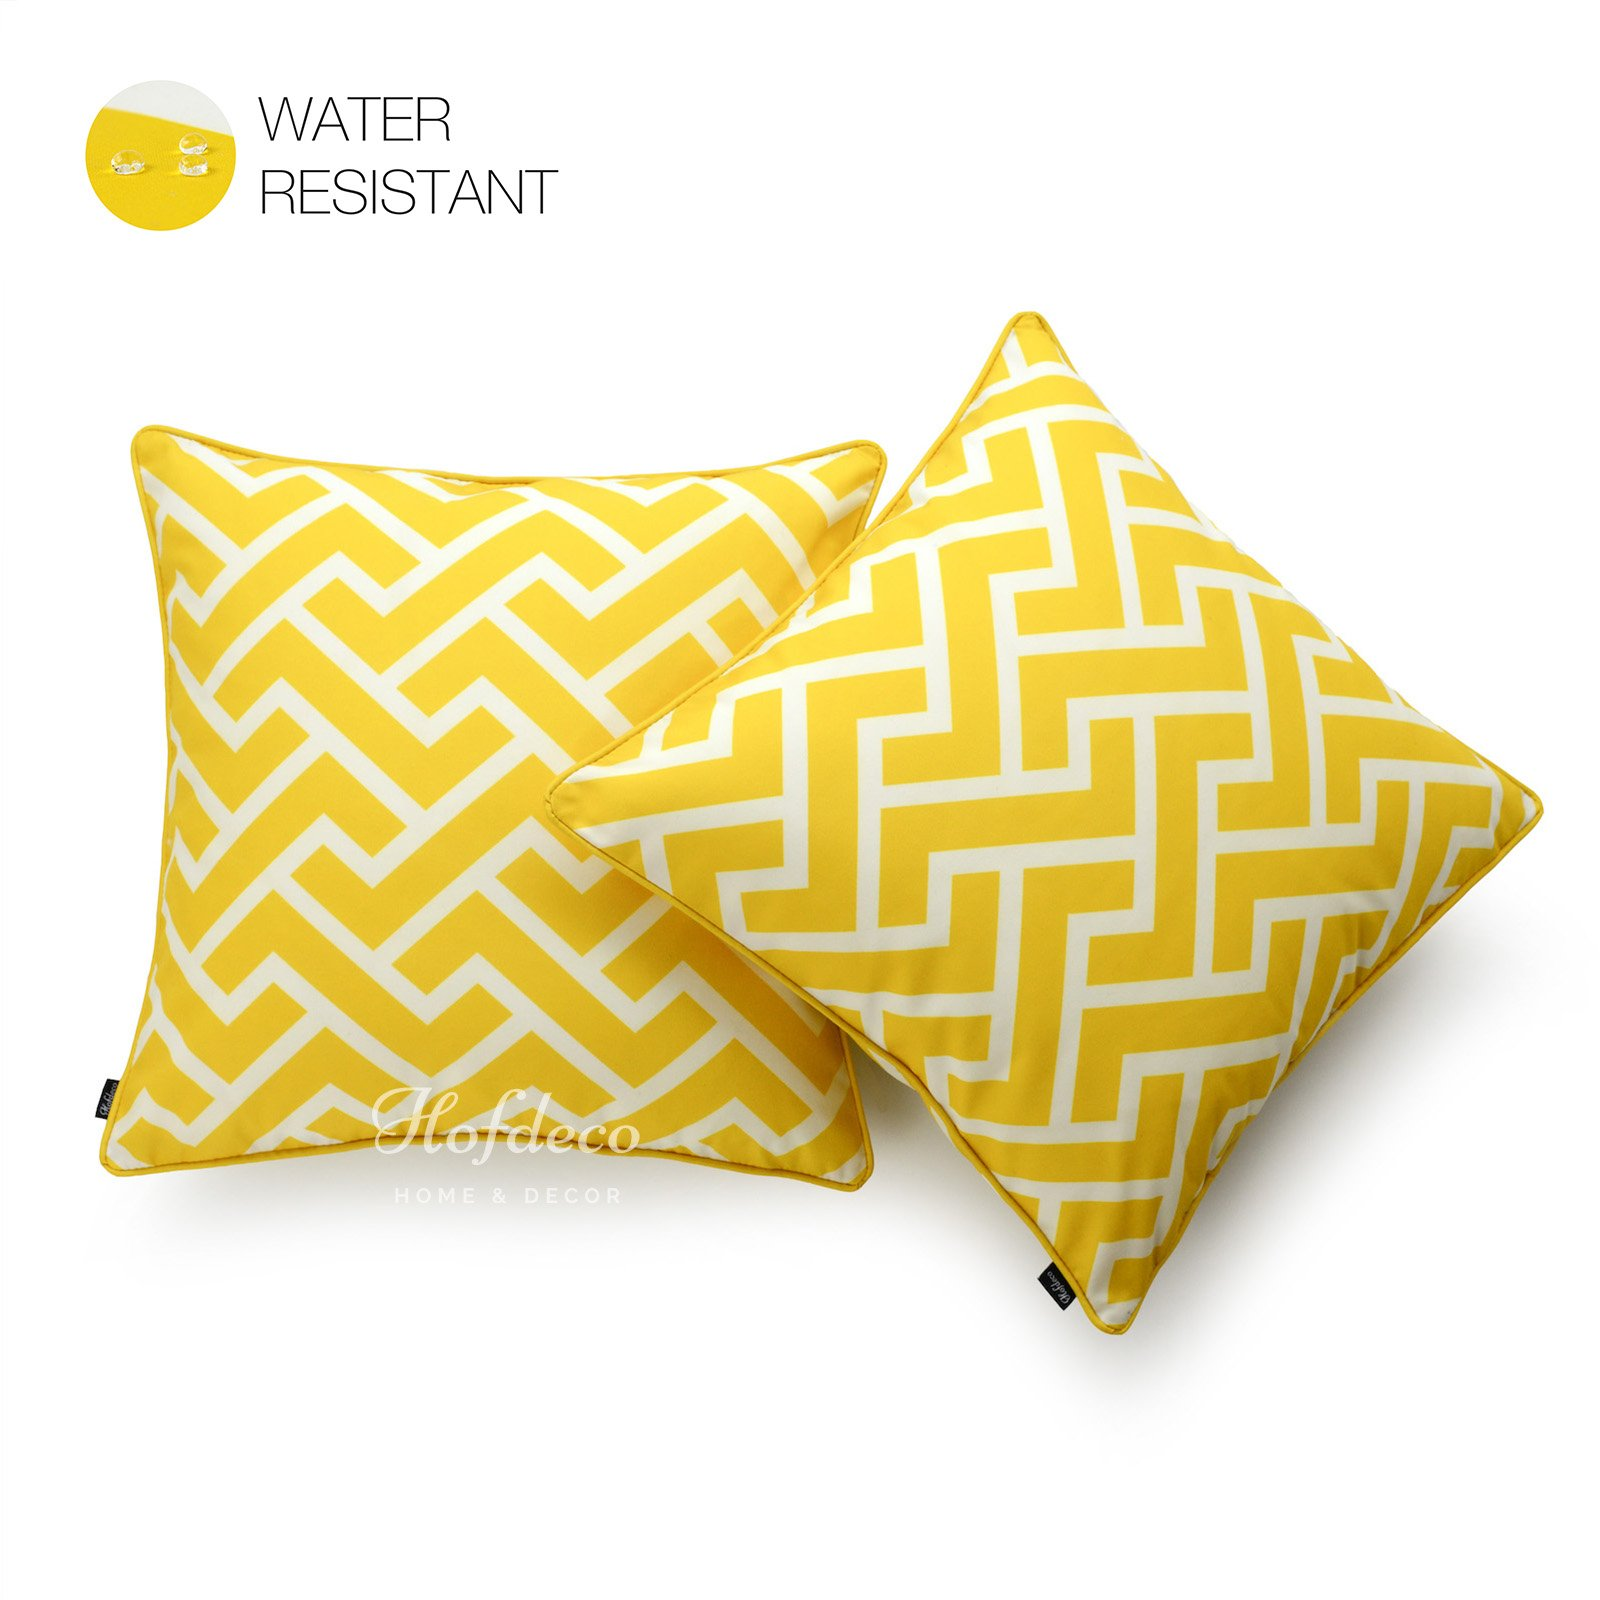 Hofdeco Decorative Throw Pillow Cover INDOOR OUTDOOR WATER RESISTANT Canvas Vibrant Yellow City Maze 18''x18'' Set of 2